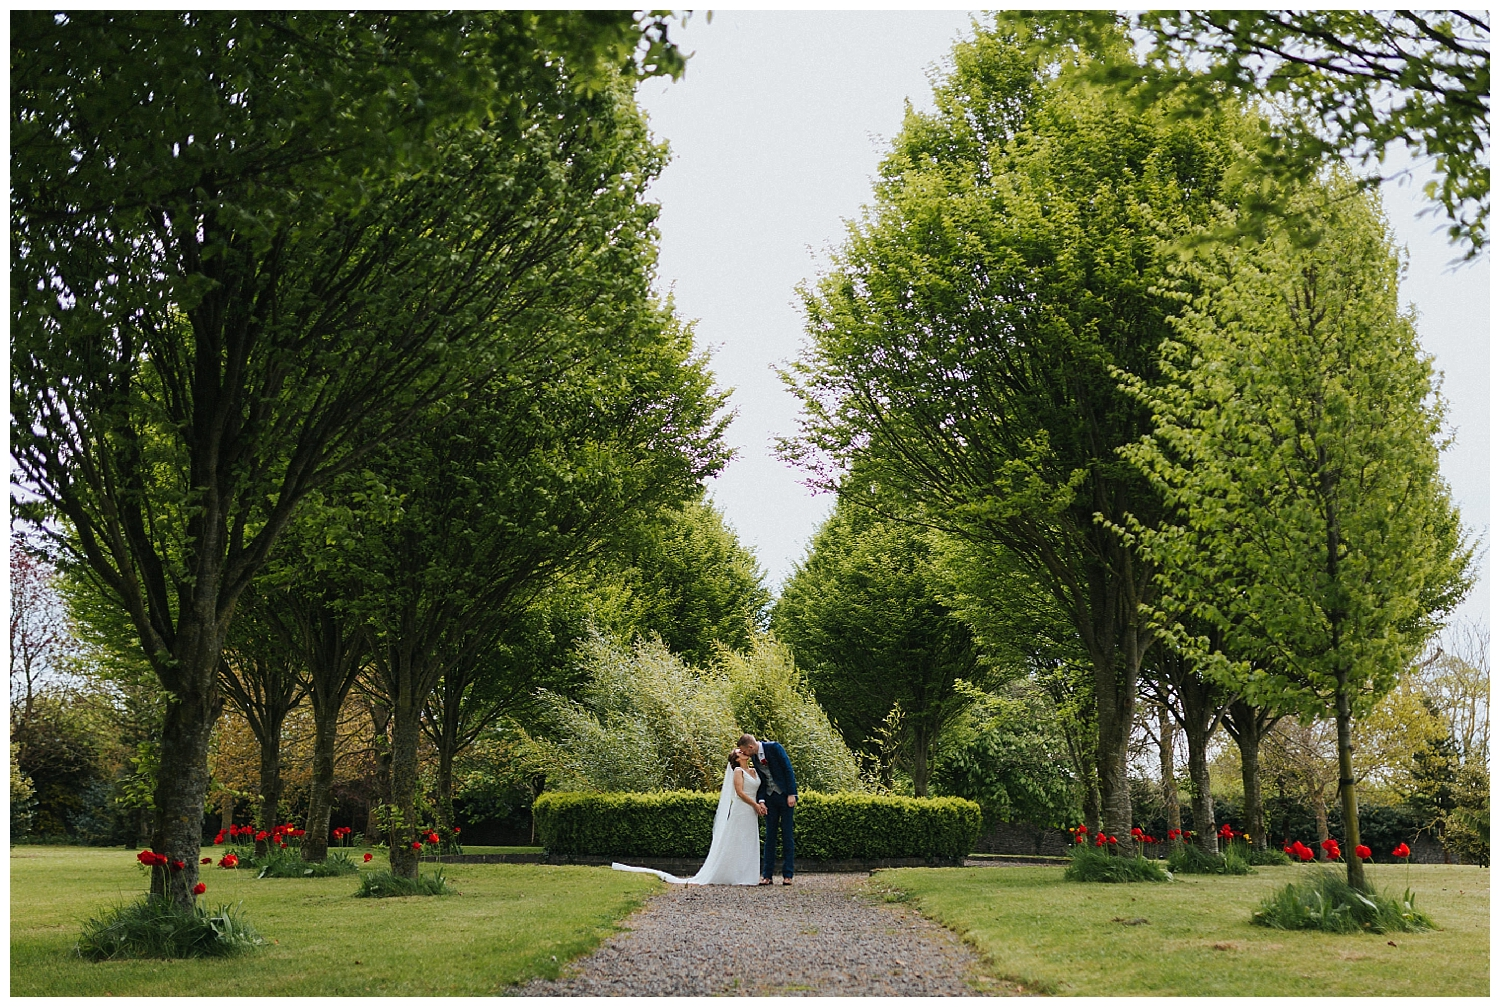 Barberstown_Castle_Wedding_Photographer_Livia_Figueiredo_479.jpg